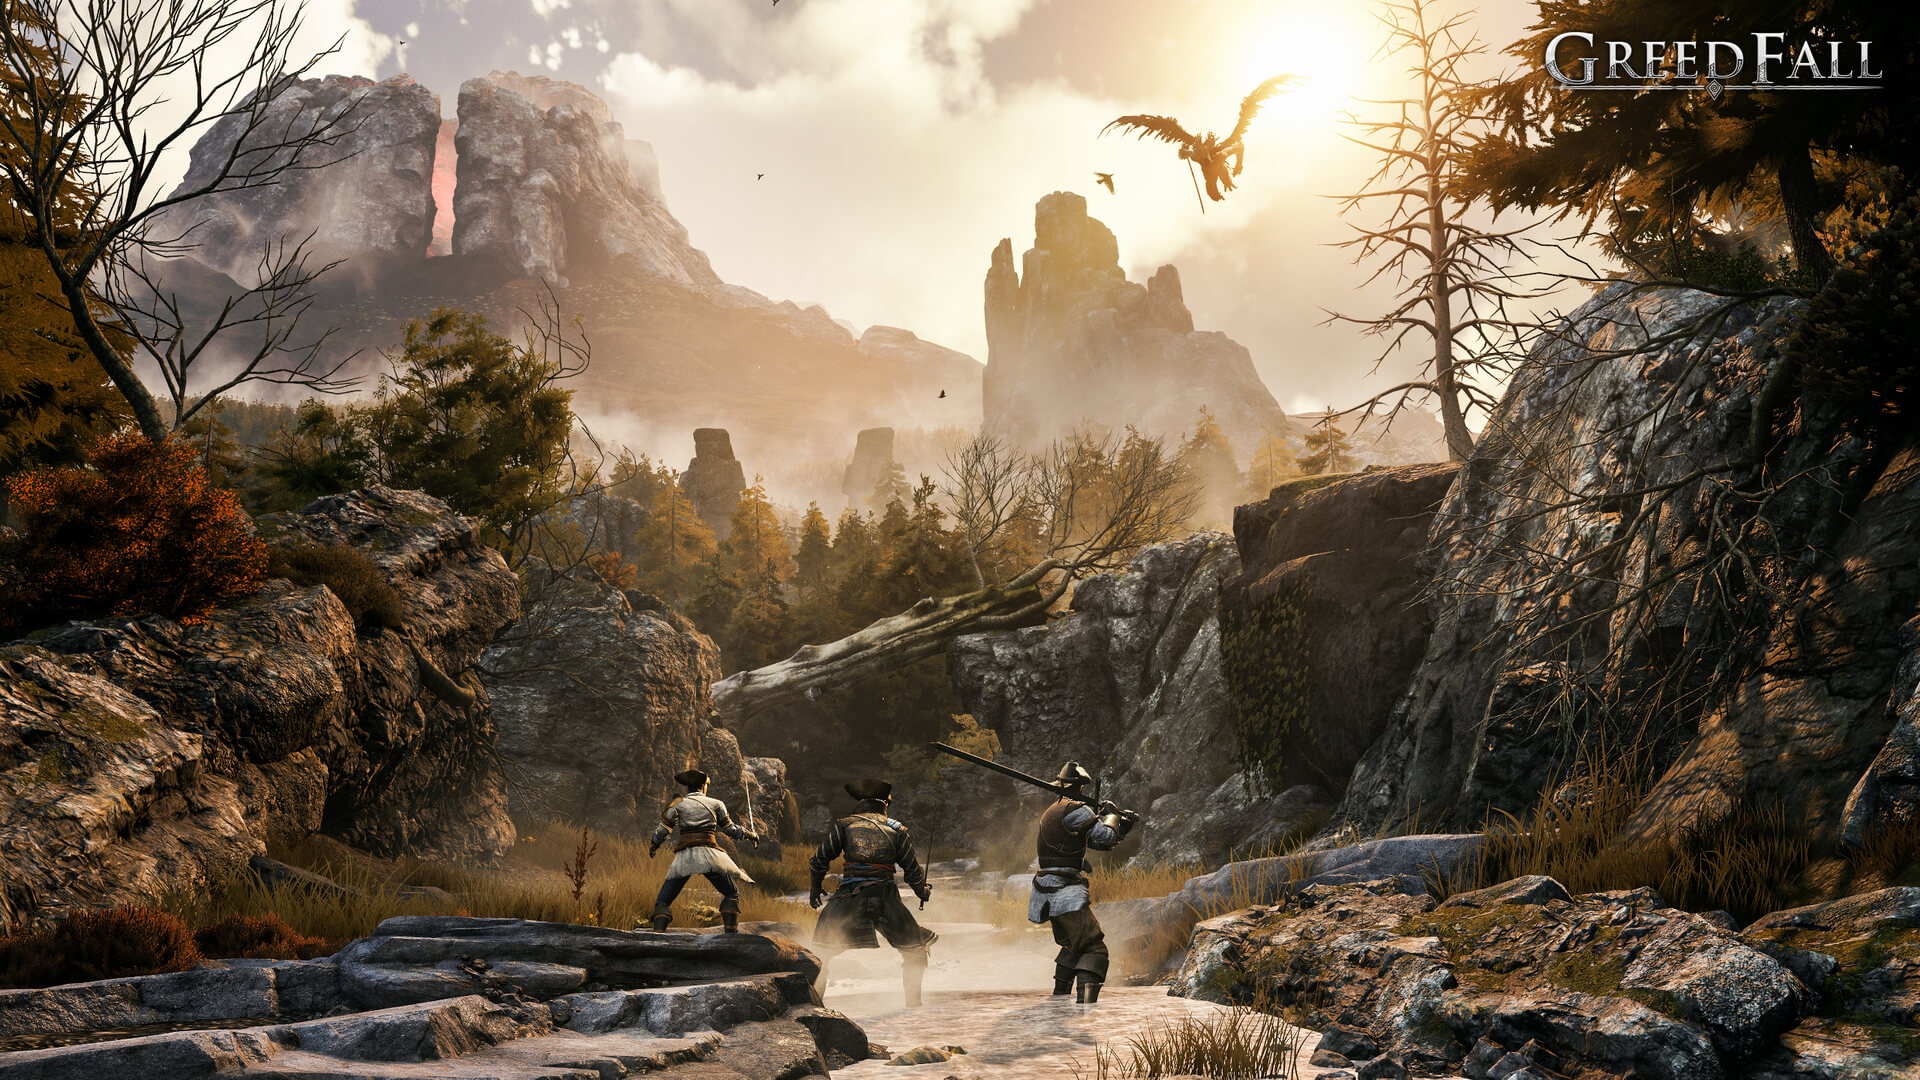 E3 2019 screenshots and trailer for SPIDERS' latest RPG, Greedfall